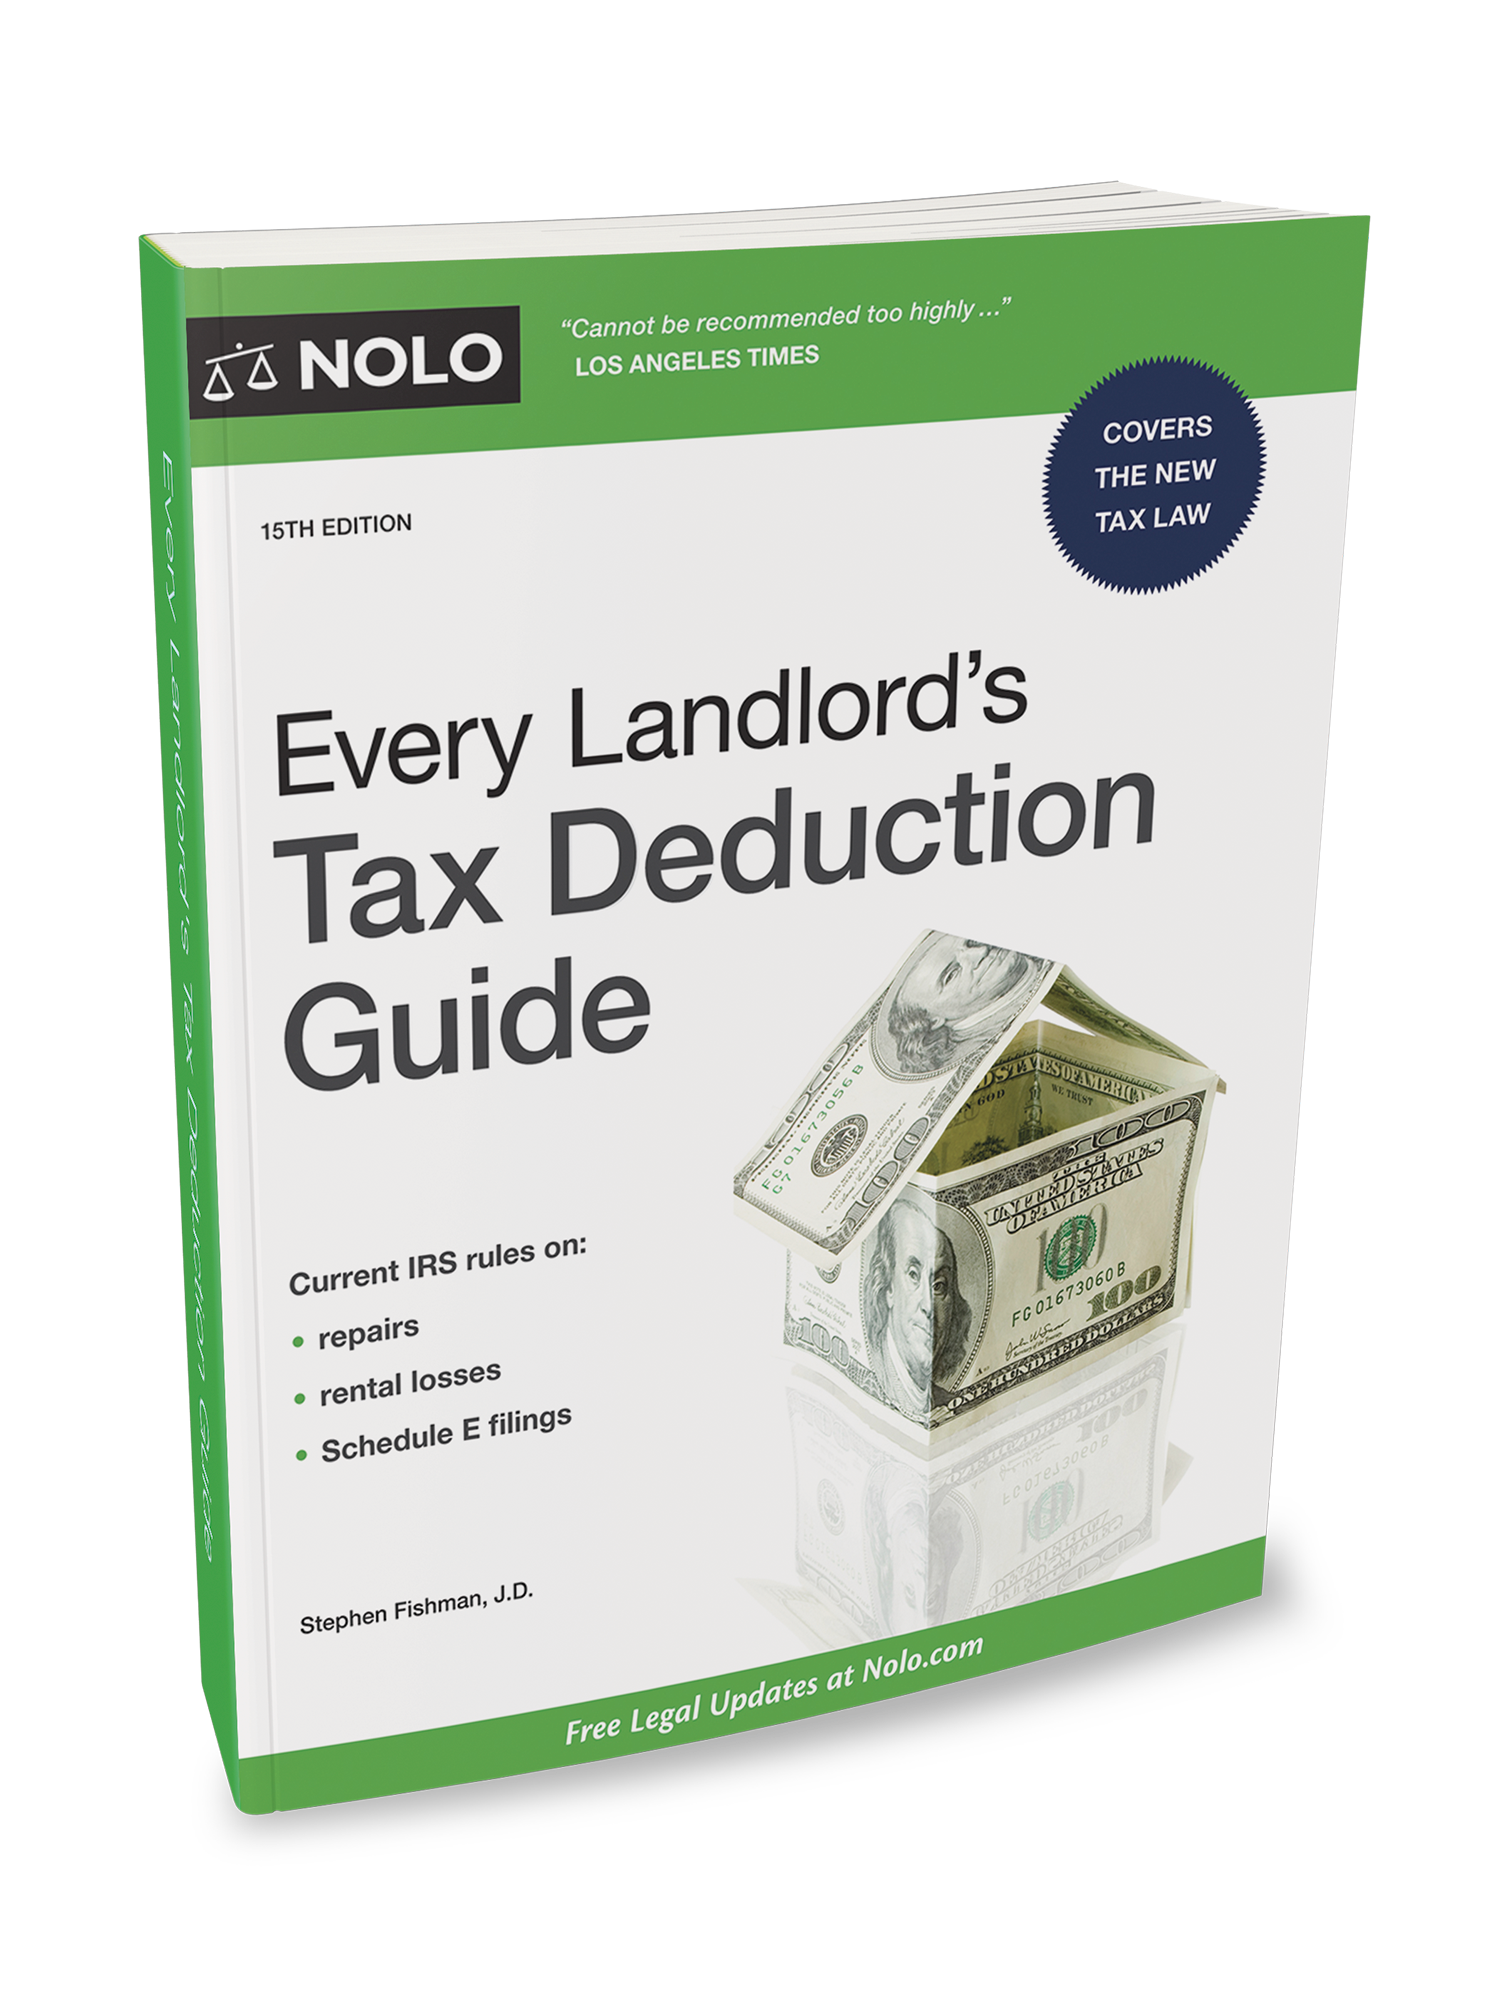 Every Landlord's Tax Deduction Guide (15th Edition) - #4759